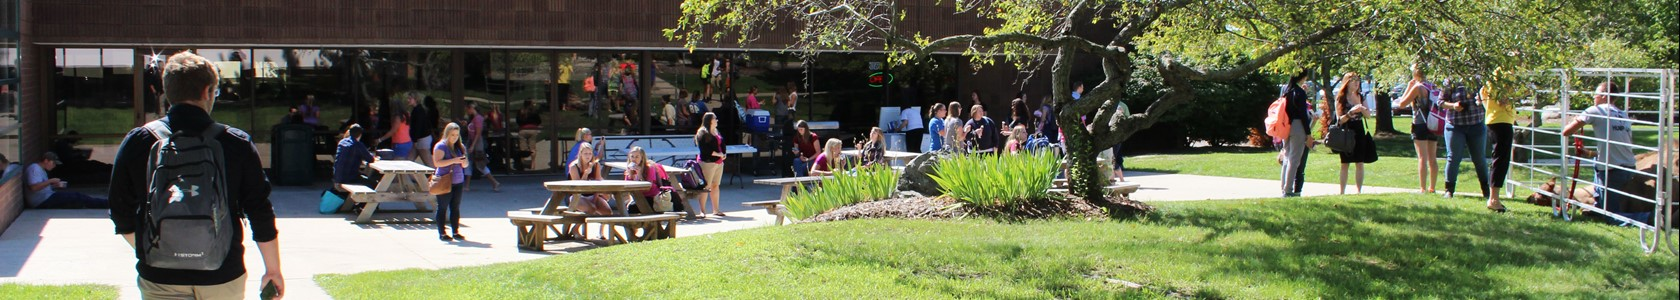 Students enjoy MCC's Sidney campus picnic area